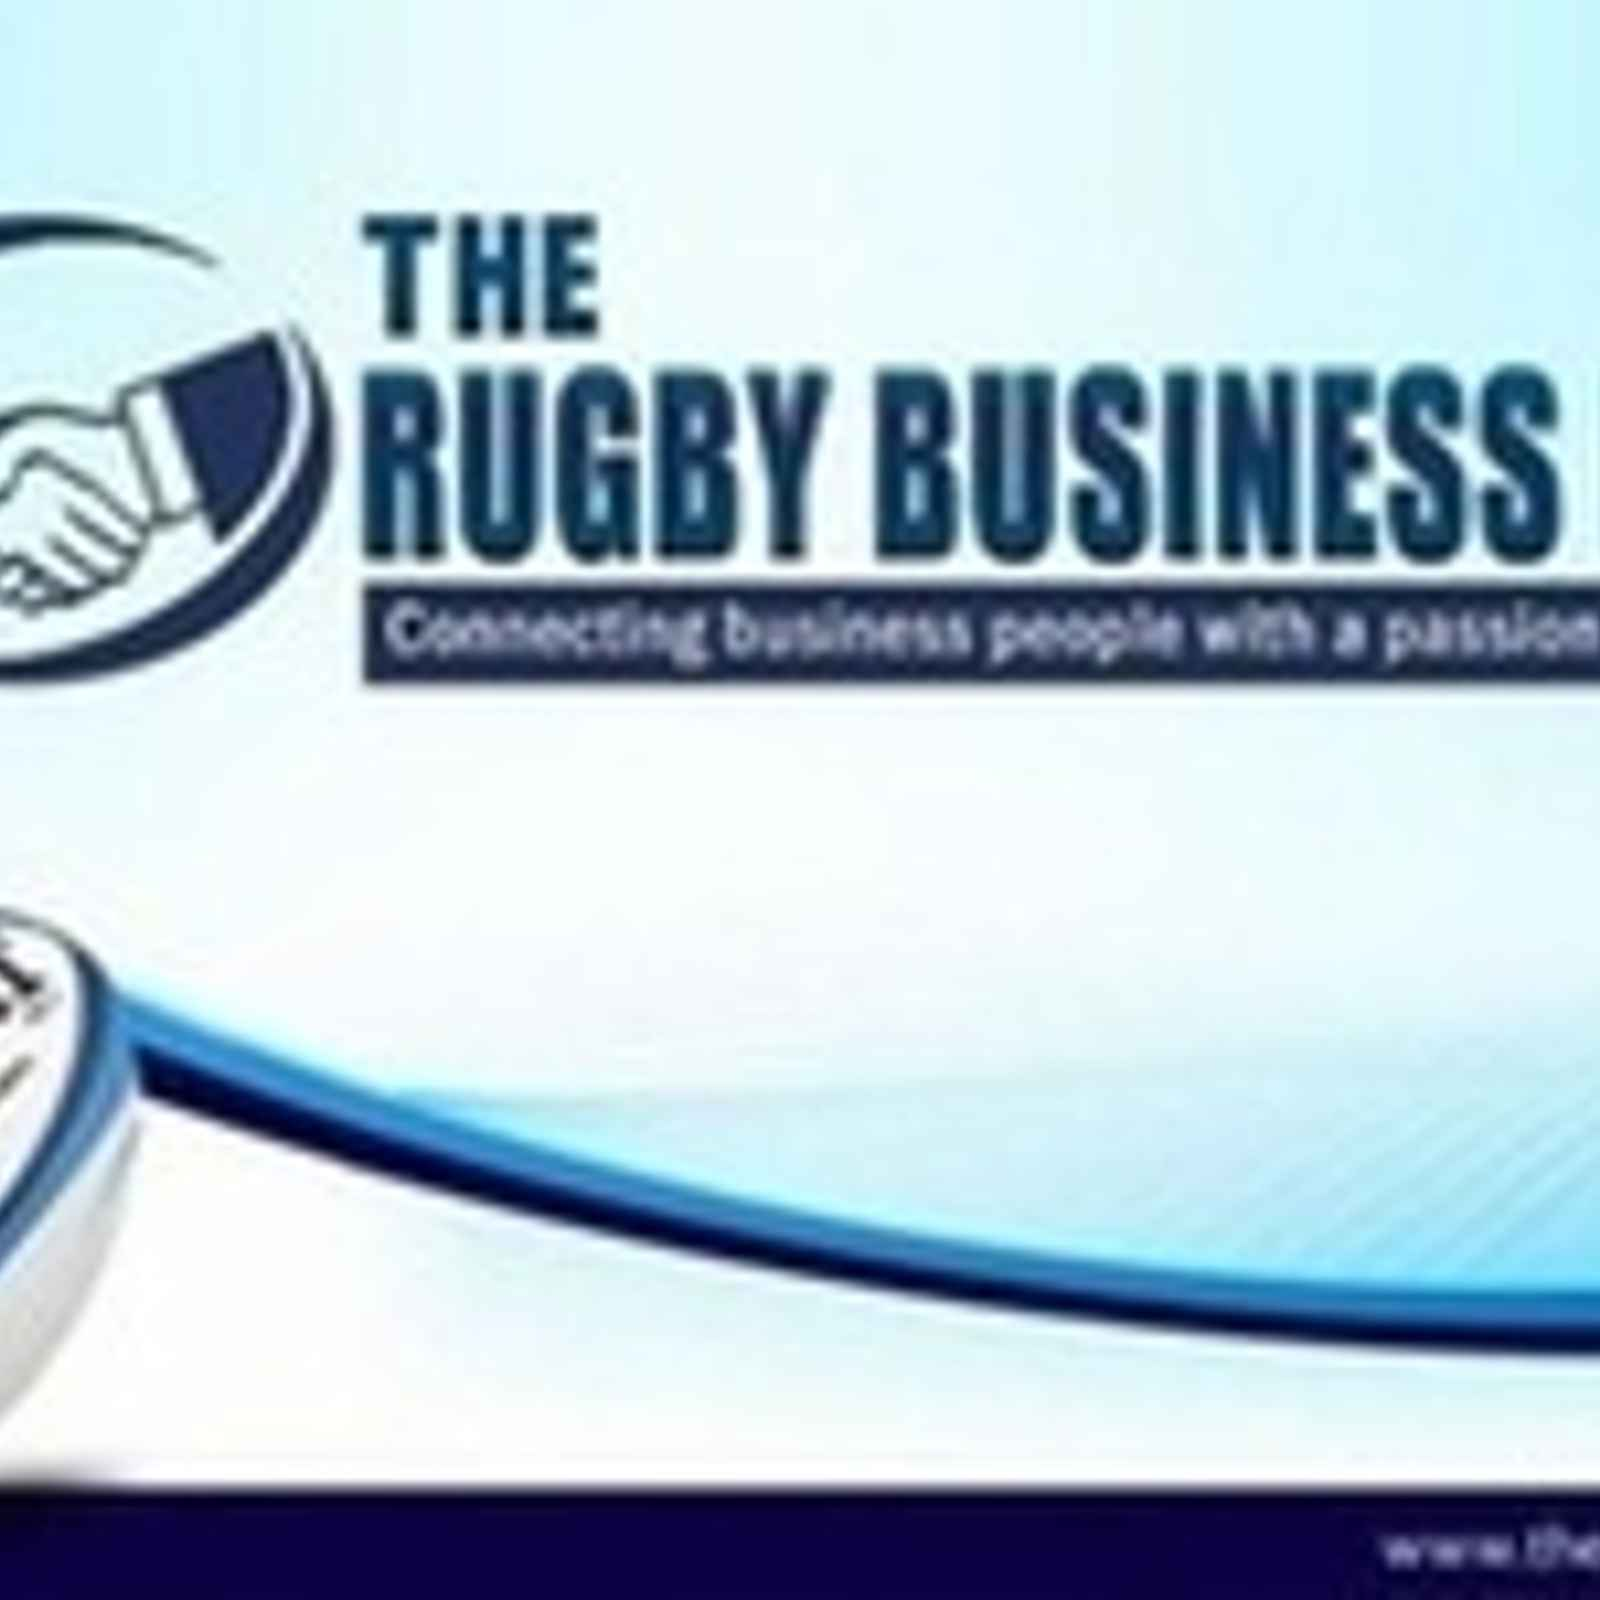 The Rugby Business Network Event